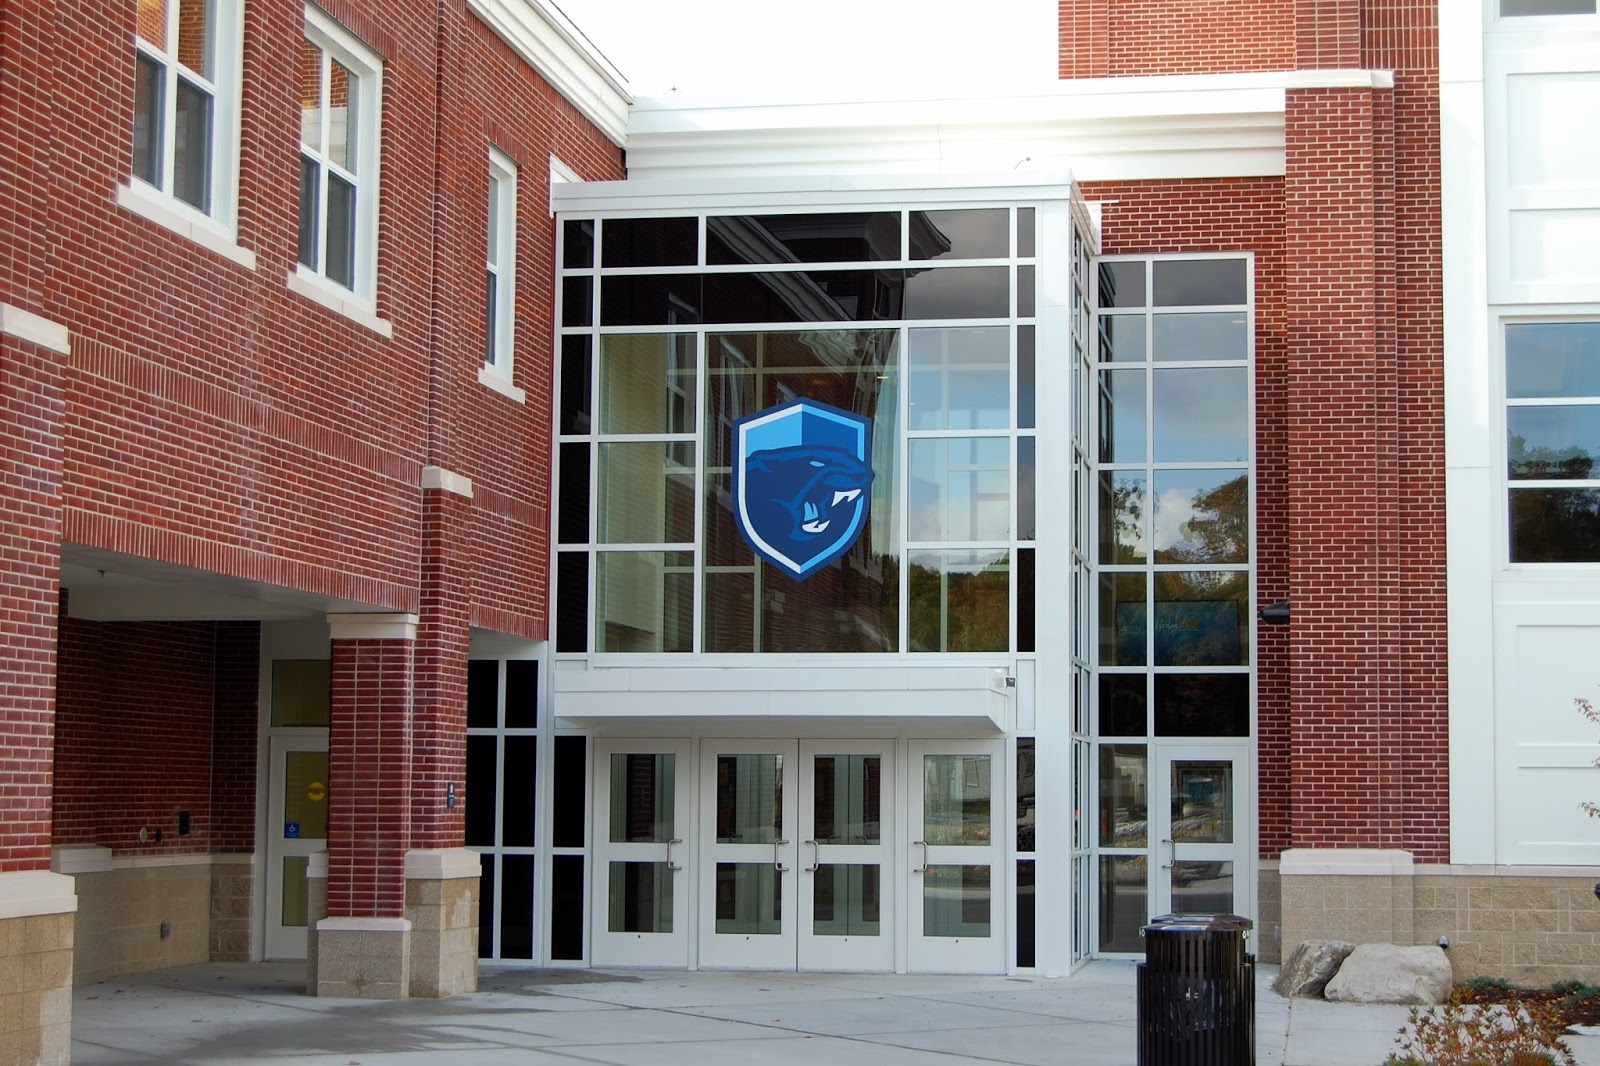 community entrance to Franklin High School, gymnasium located on the left inside the doors